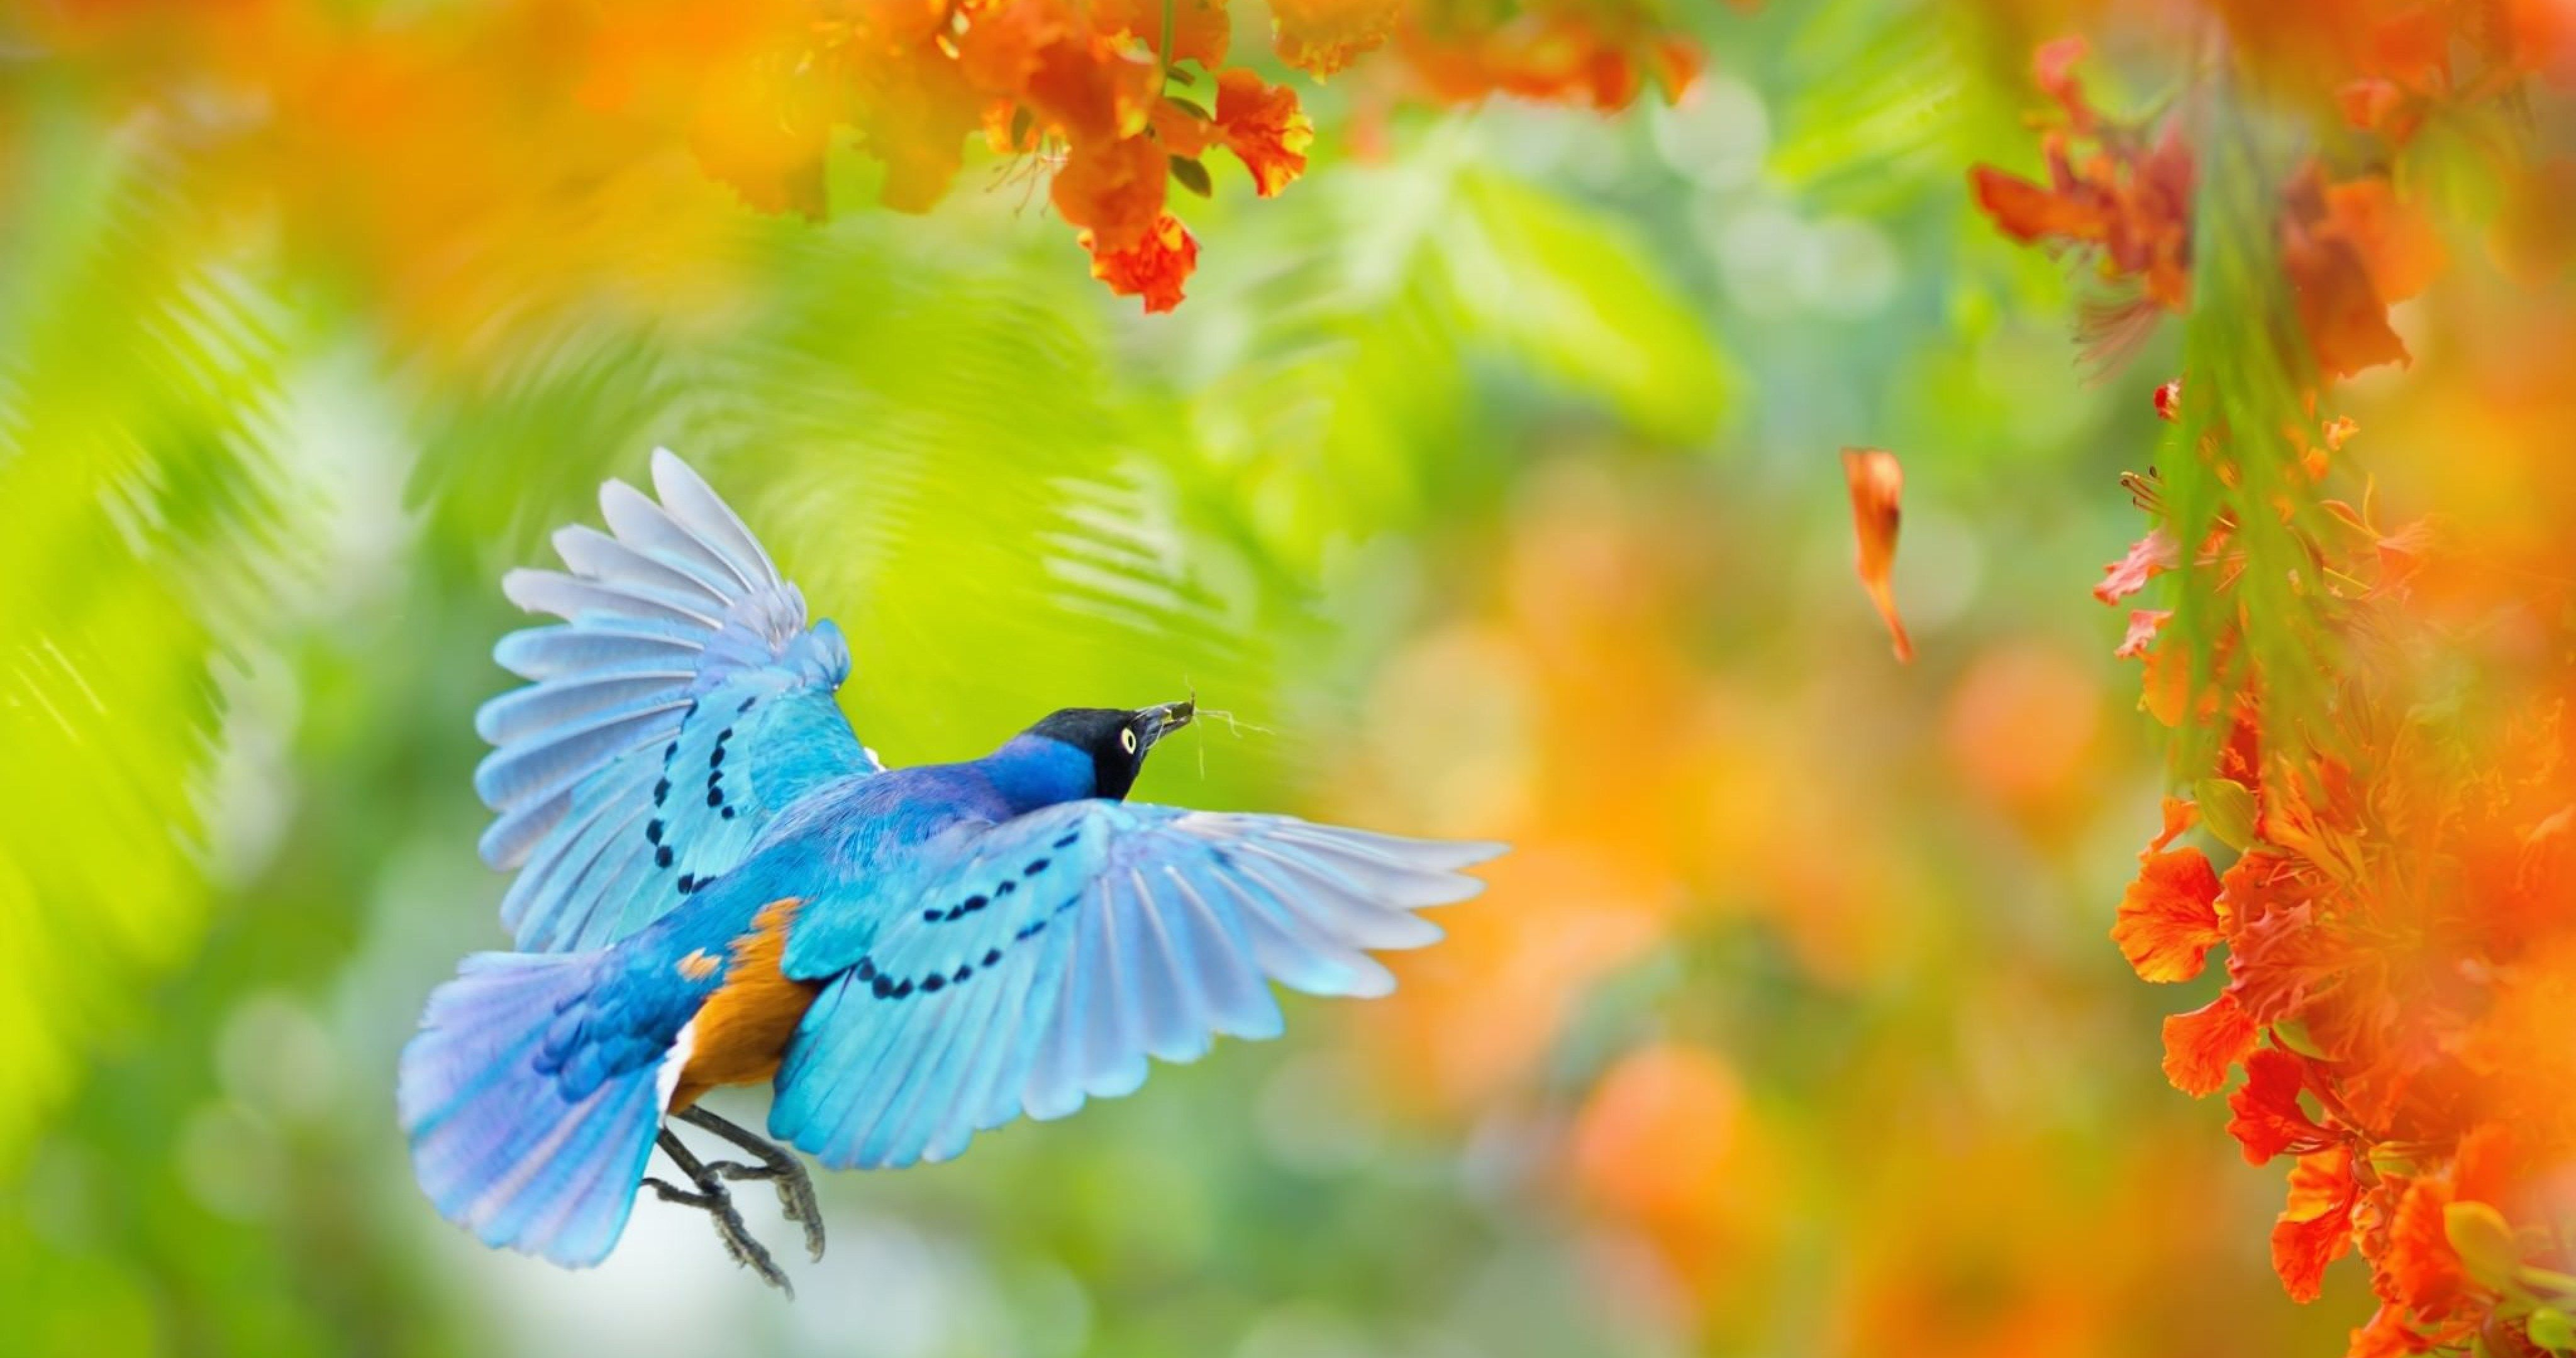 The Yellow Wallpaper Meaningful Quotes Flying Bird In Africa 4k Ultra Hd Wallpaper Ololoshenka